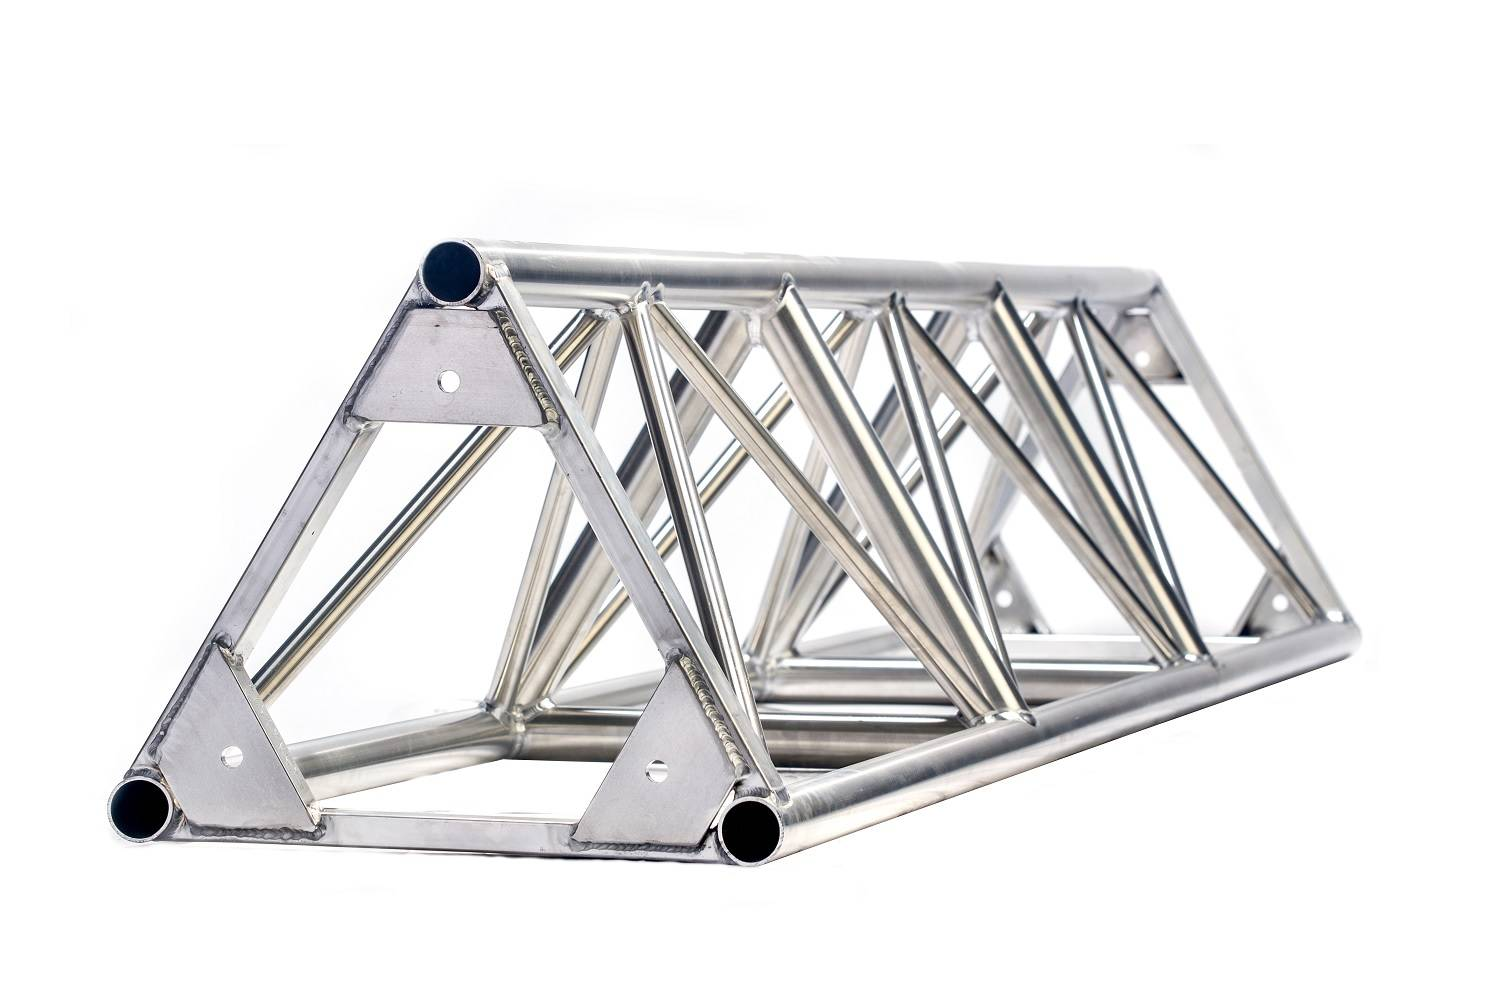 Fixed triangle truss 20.5 plated Fixed triangle truss 20.5 plated